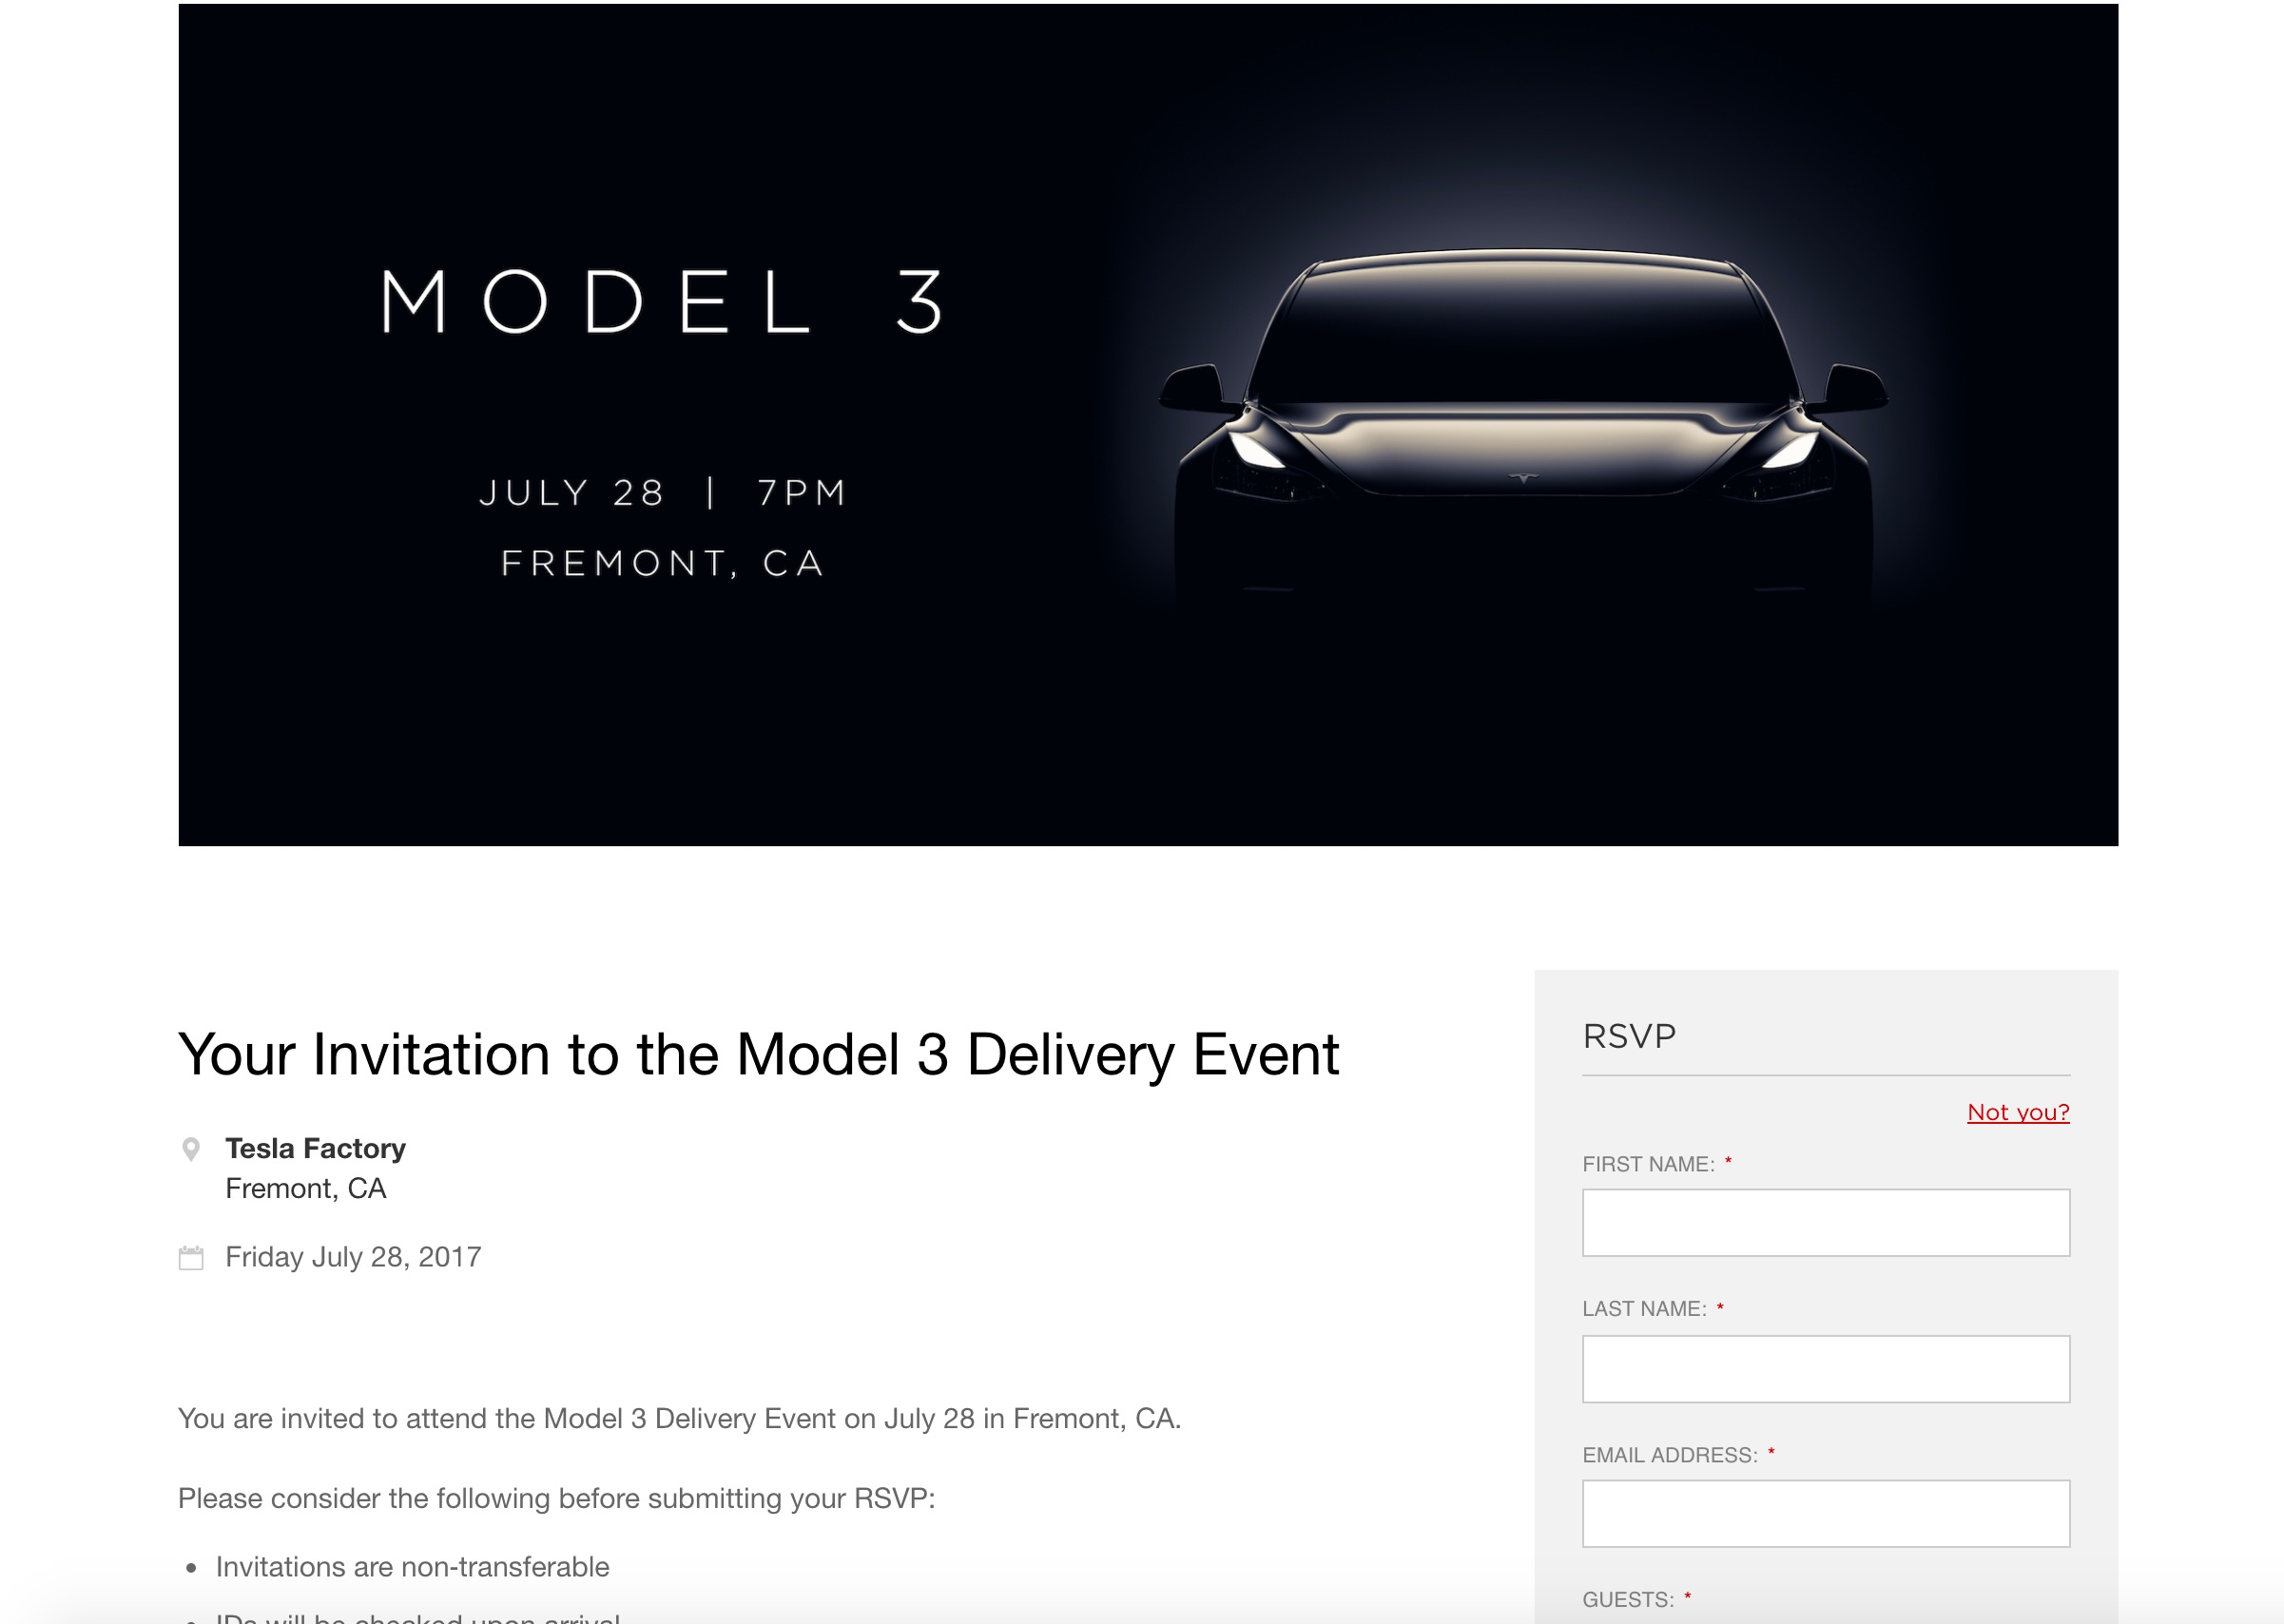 tesla-model-3-delivery-event-email-invitation